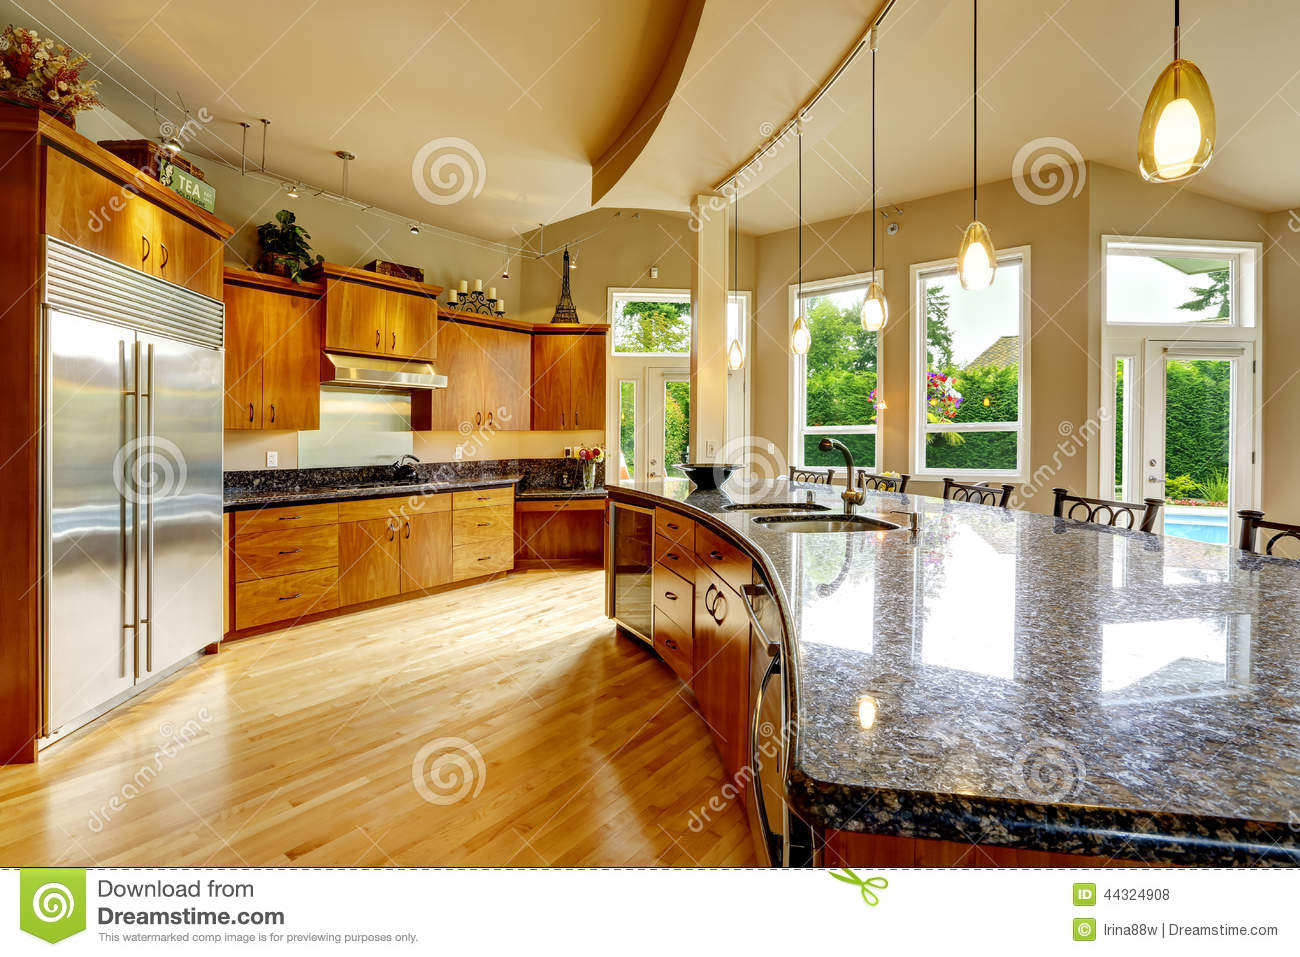 Kitchen interior in luxury house real estate in wa stock photo image 44324908 - Luxury kitchen room ...